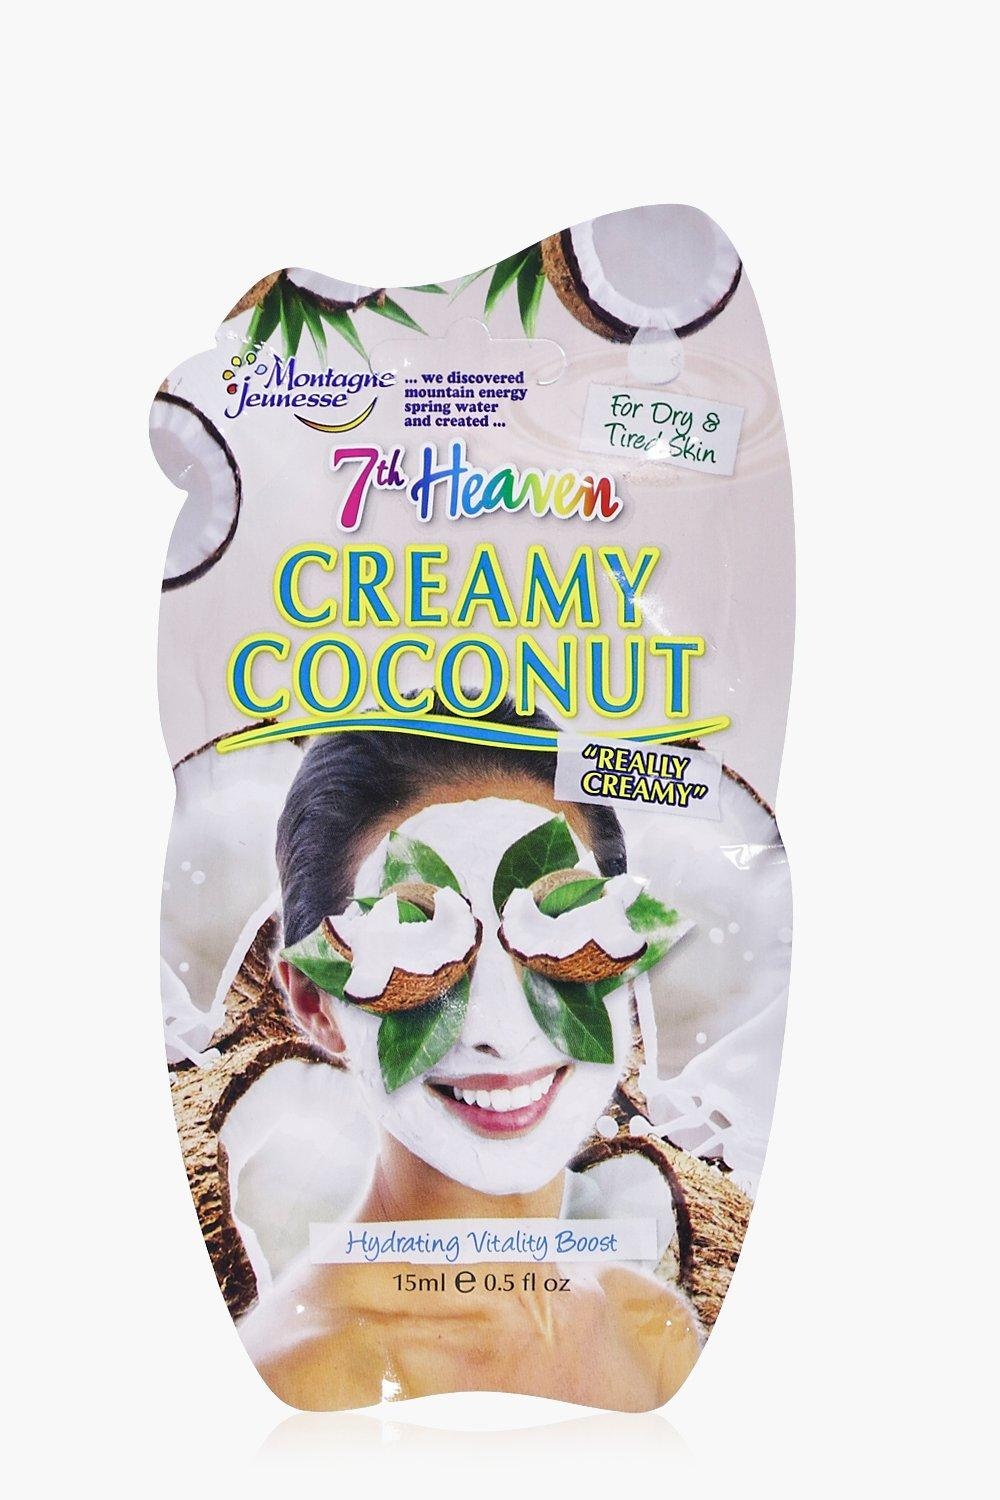 Creamy Coconut Face Mask